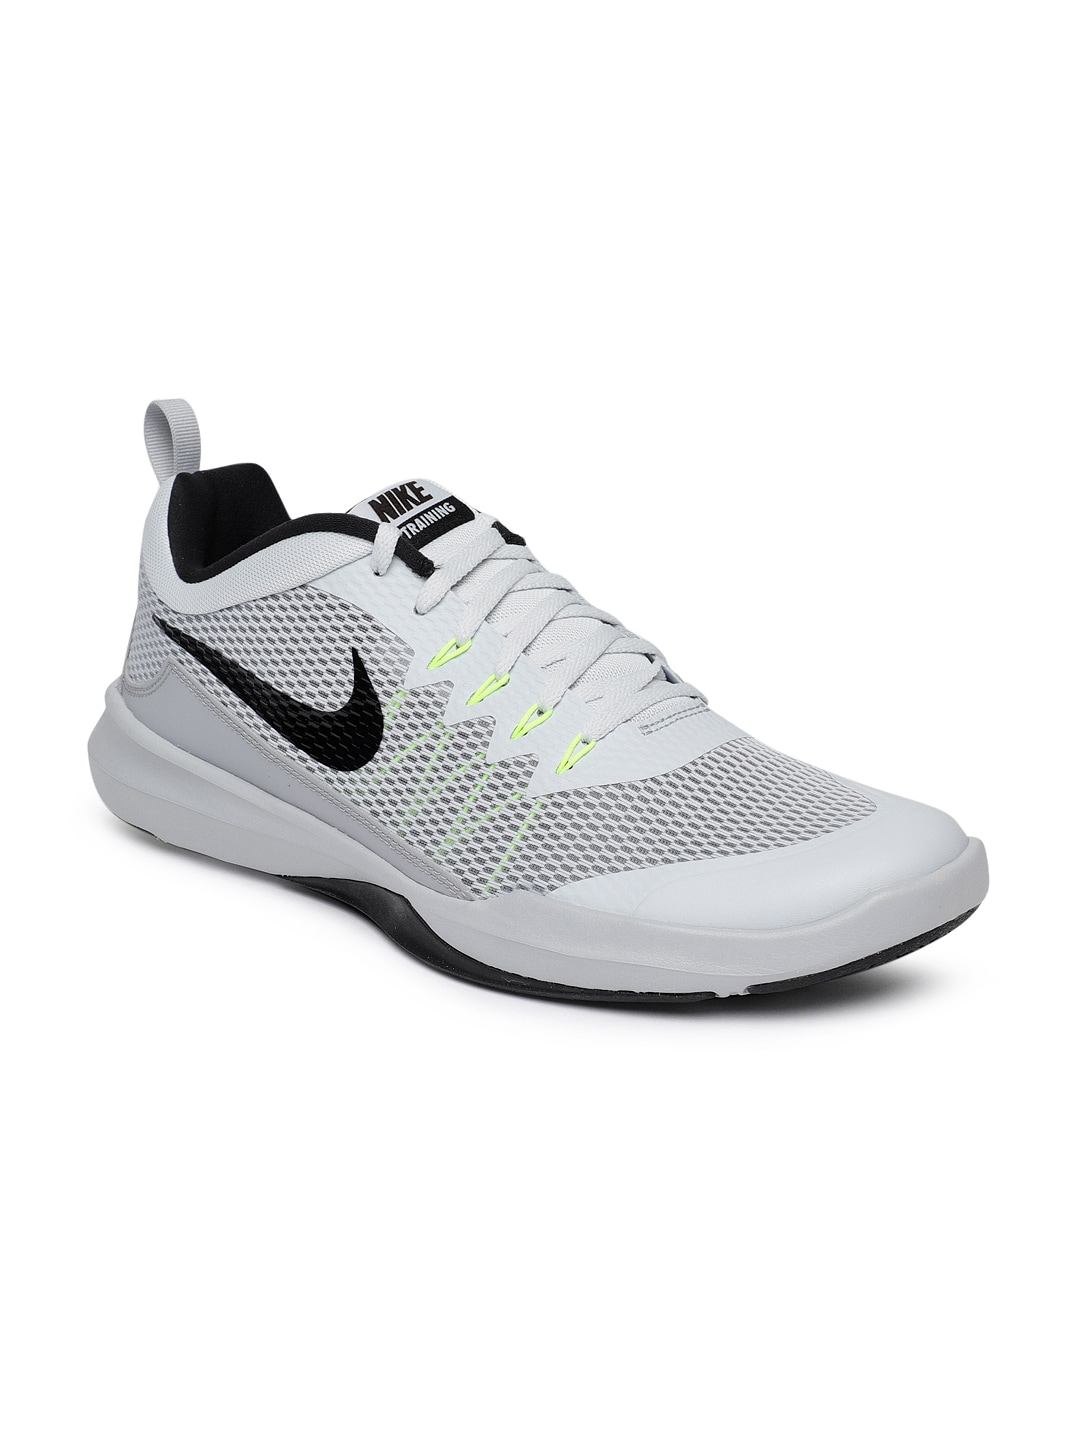 11219451ef88 Nike Shoes - Buy Nike Shoes for Men